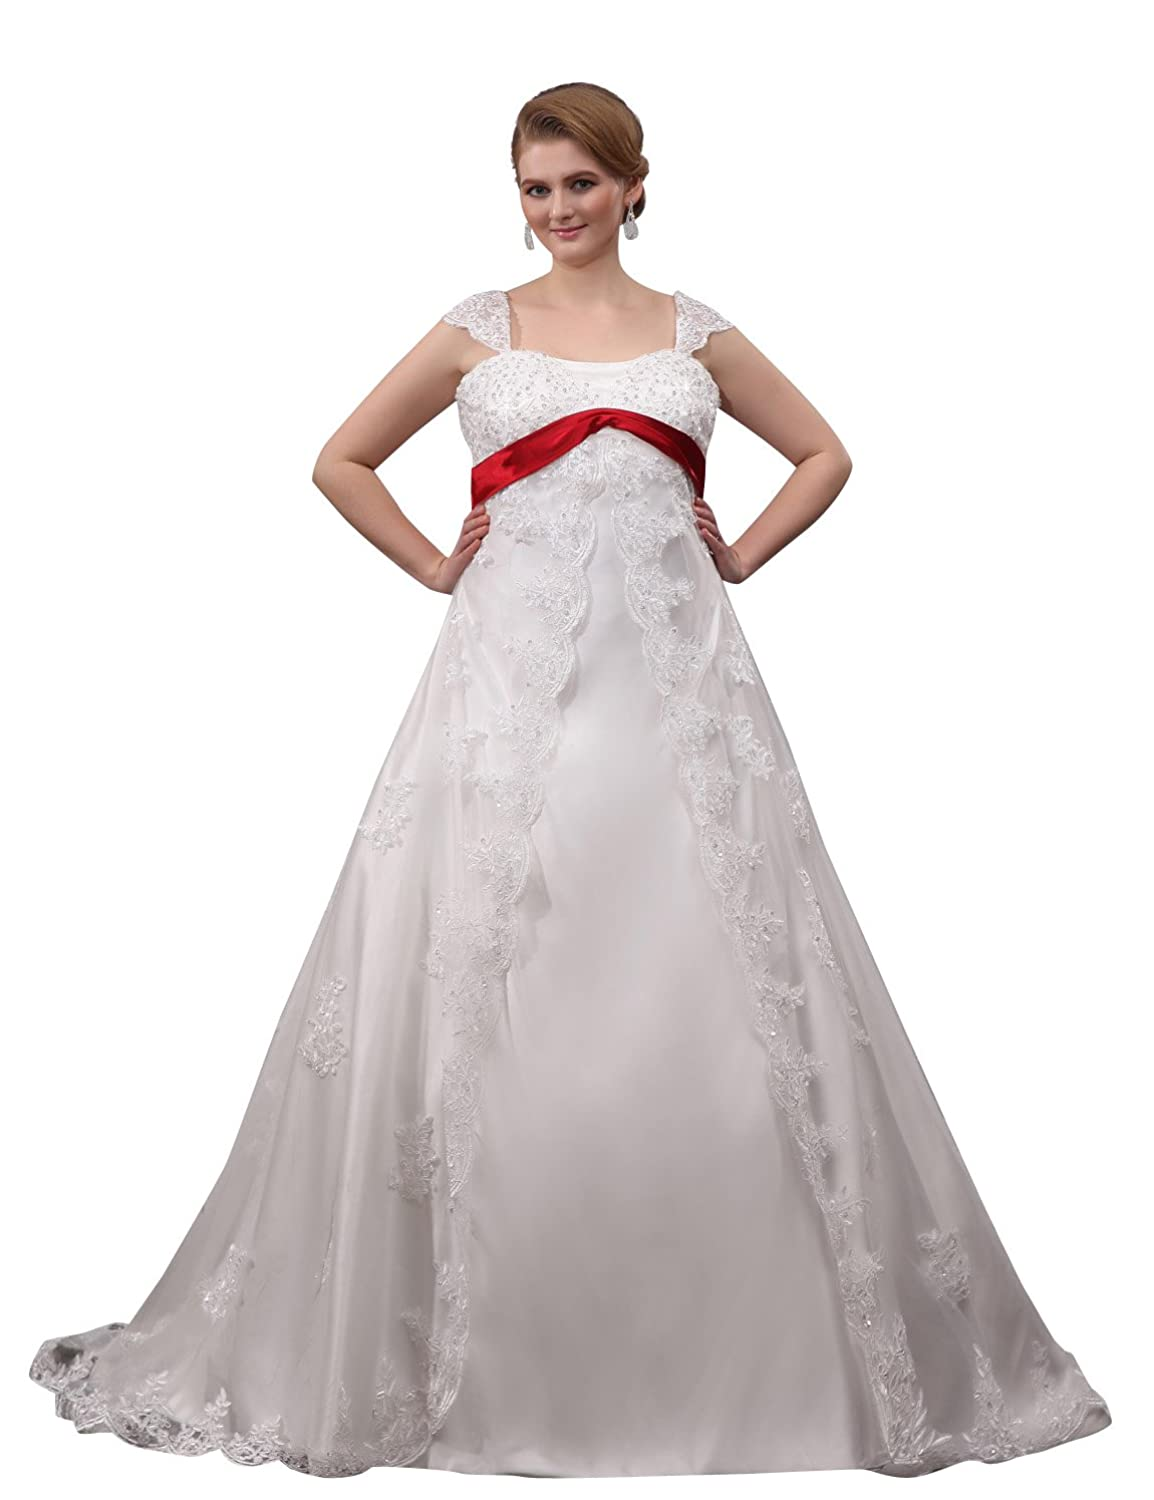 JOLLY BRIDAL Lace Beading Bridal Gown Plus Size jolly 100g